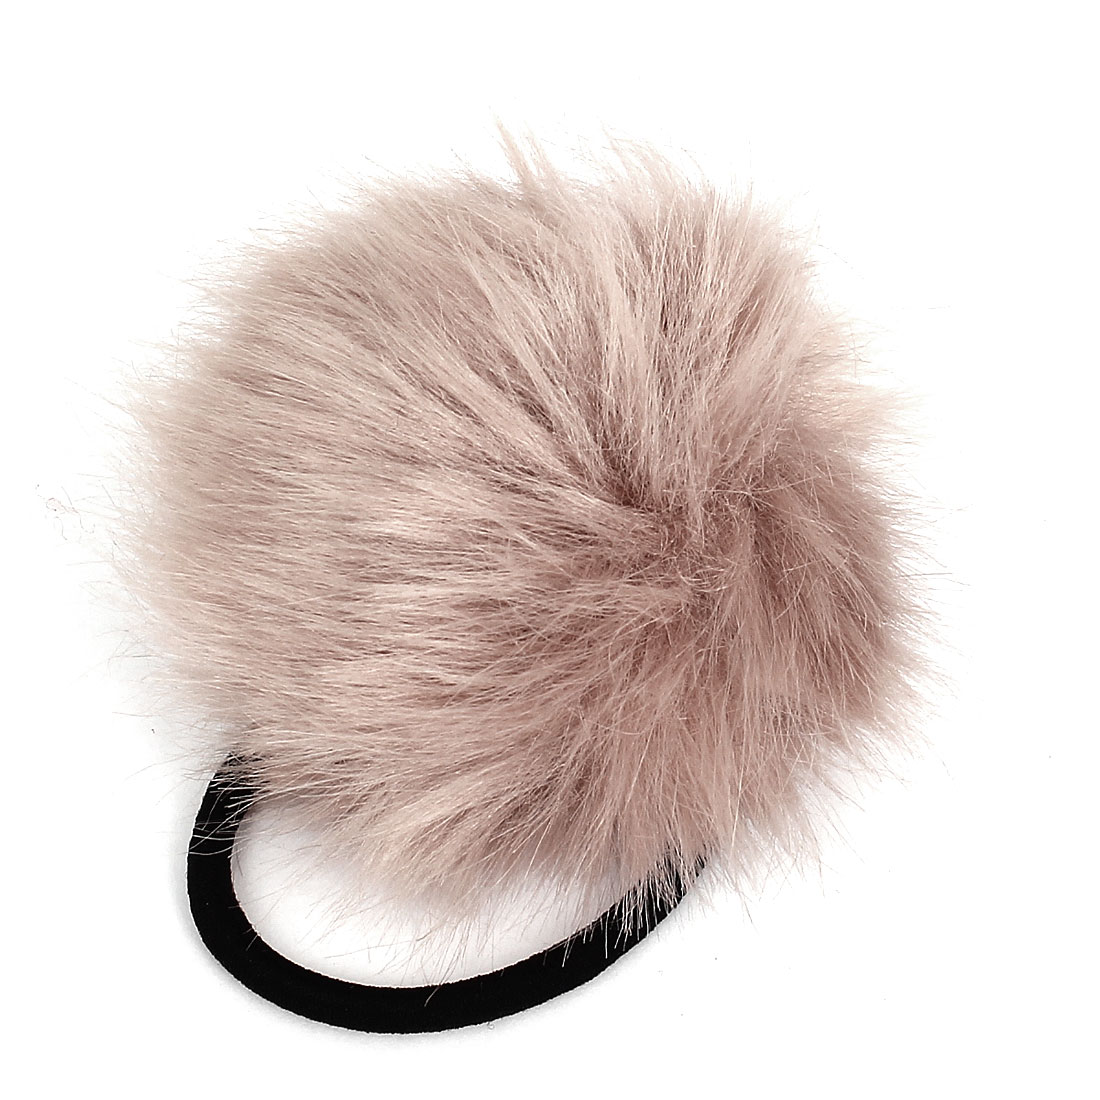 Rosybrown Fluffy Faux Fur Decor Stretchy Band Hair Tie Ponytail Hairband for Lady